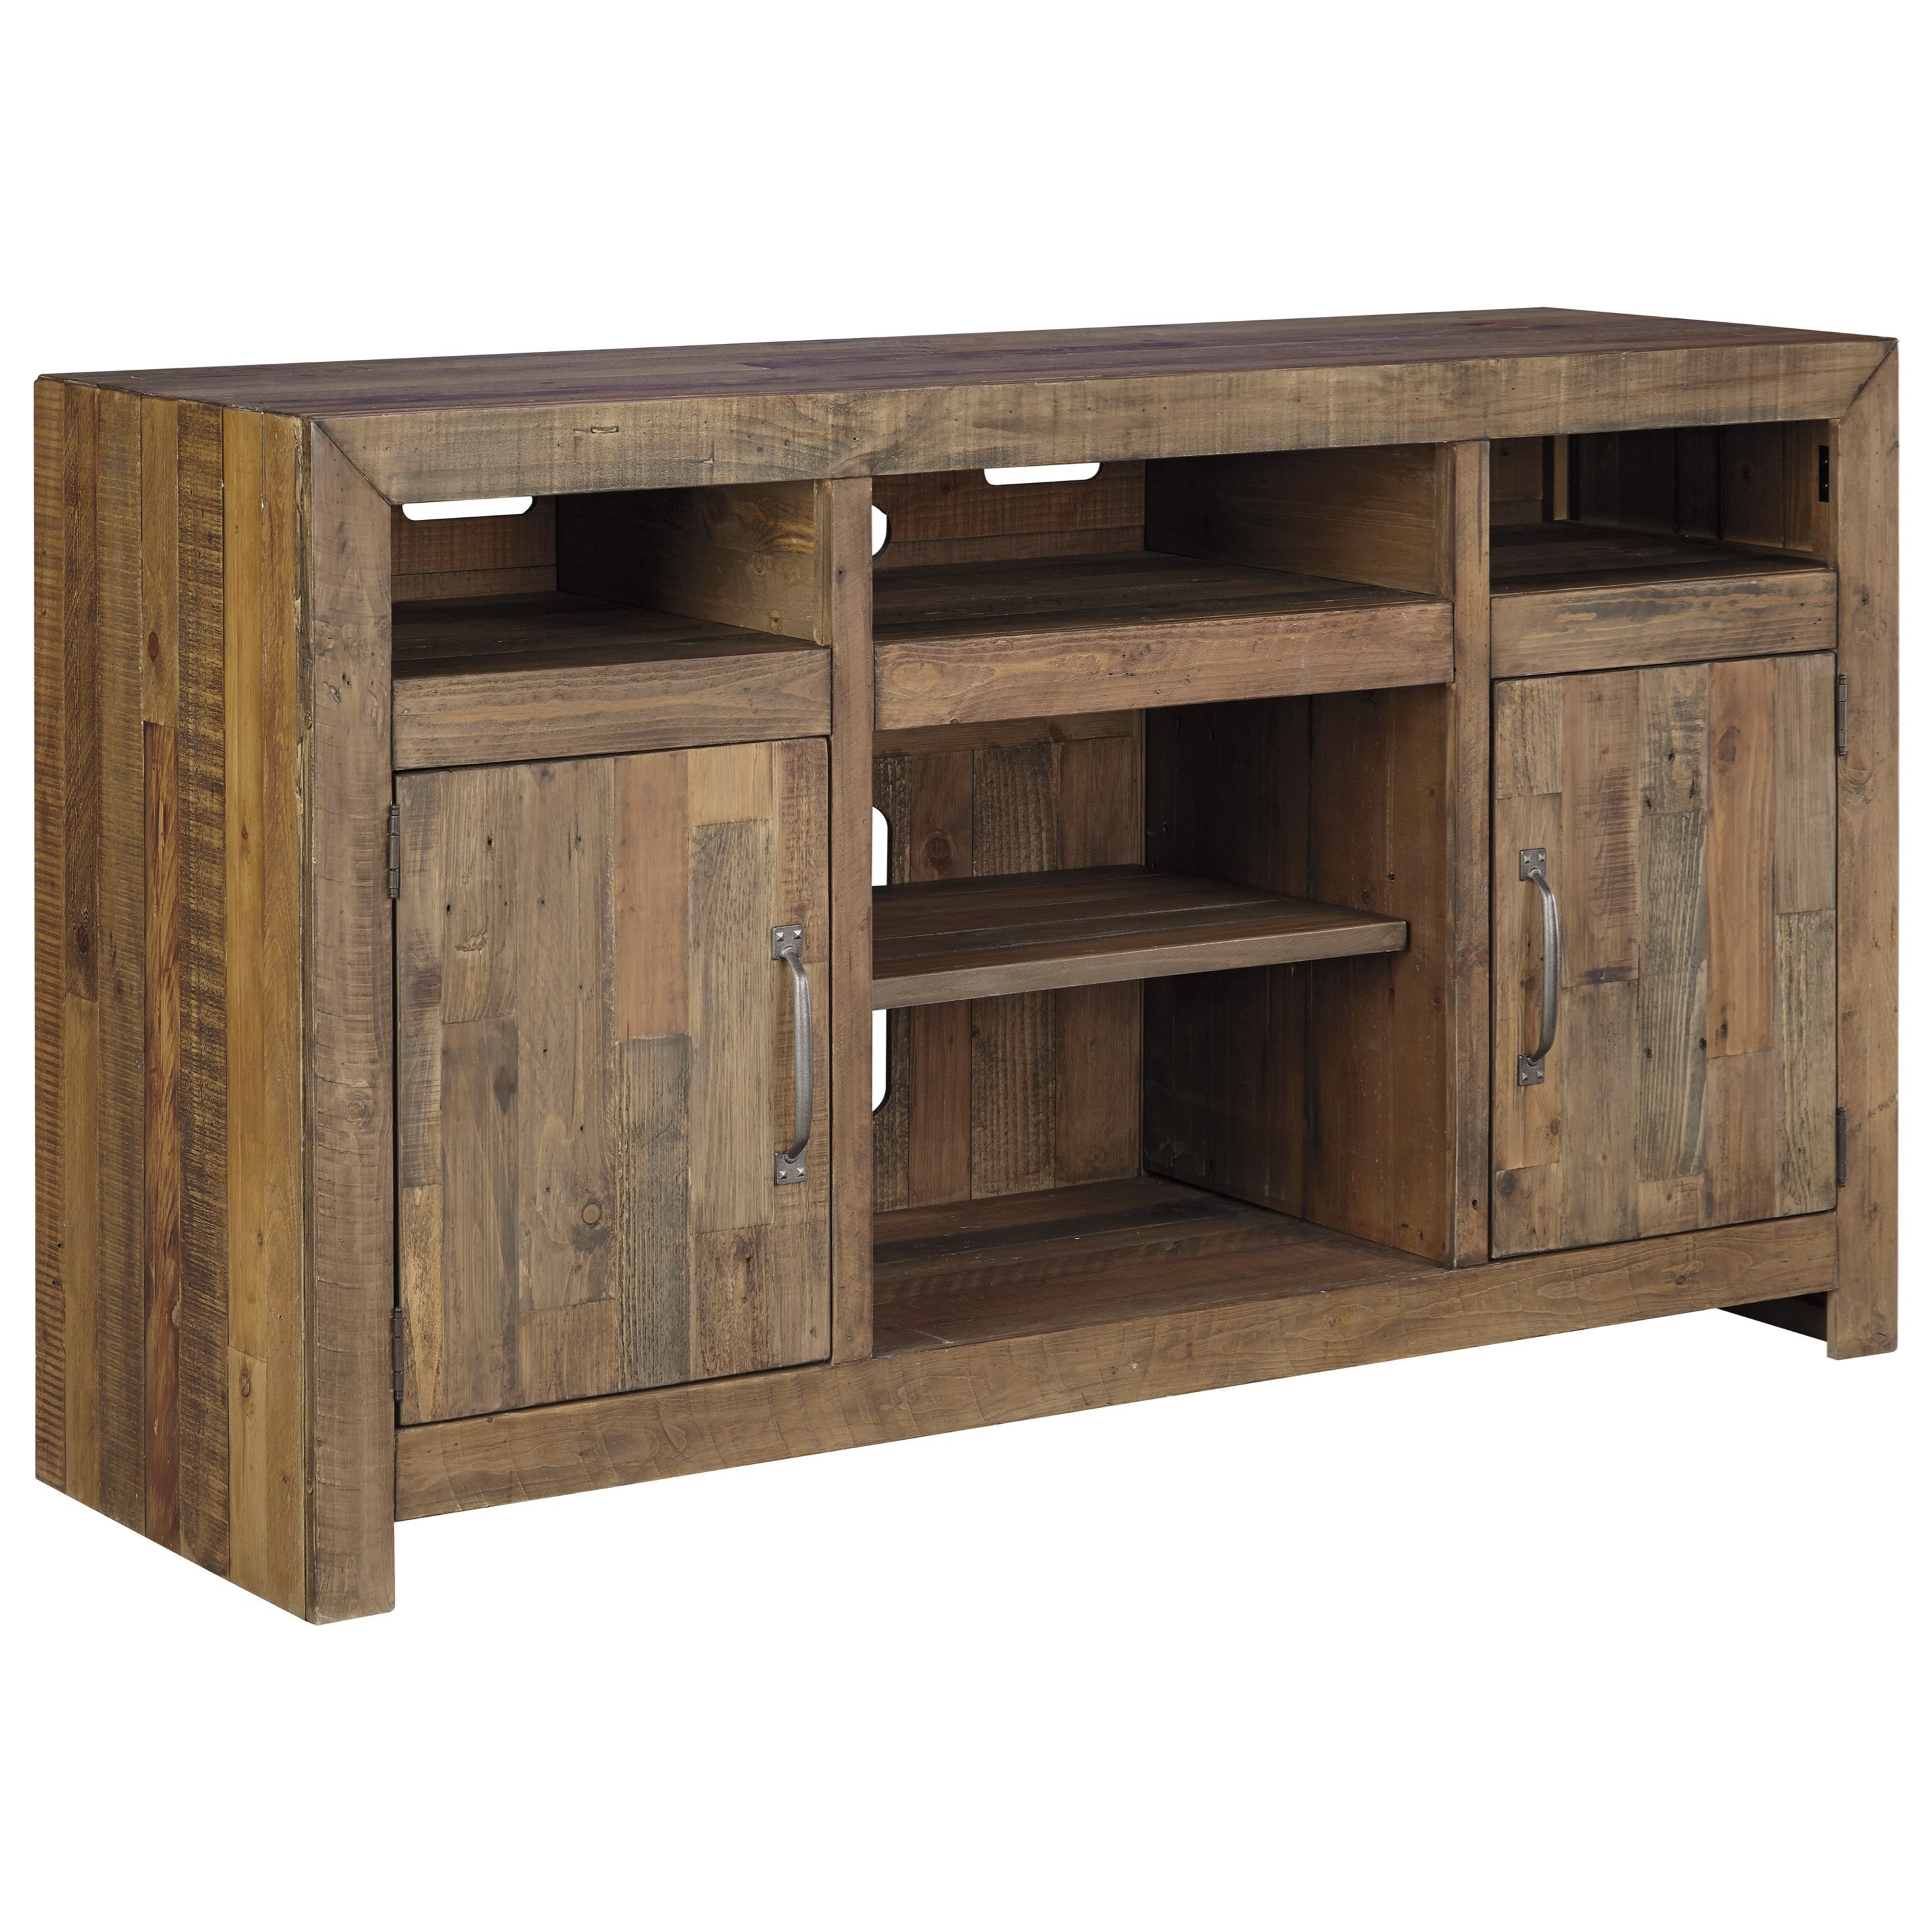 Signature Design By Ashley Sommerford Reclaimed Pine Solid